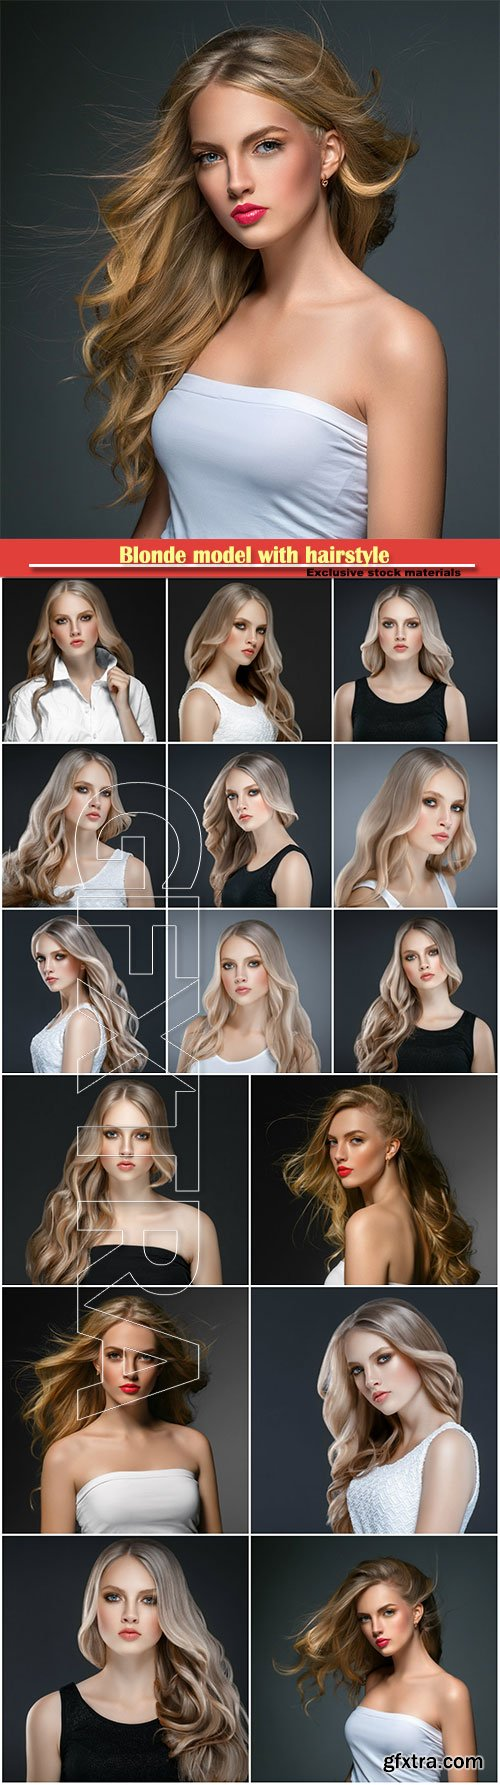 Blonde model with hairstyle over black background